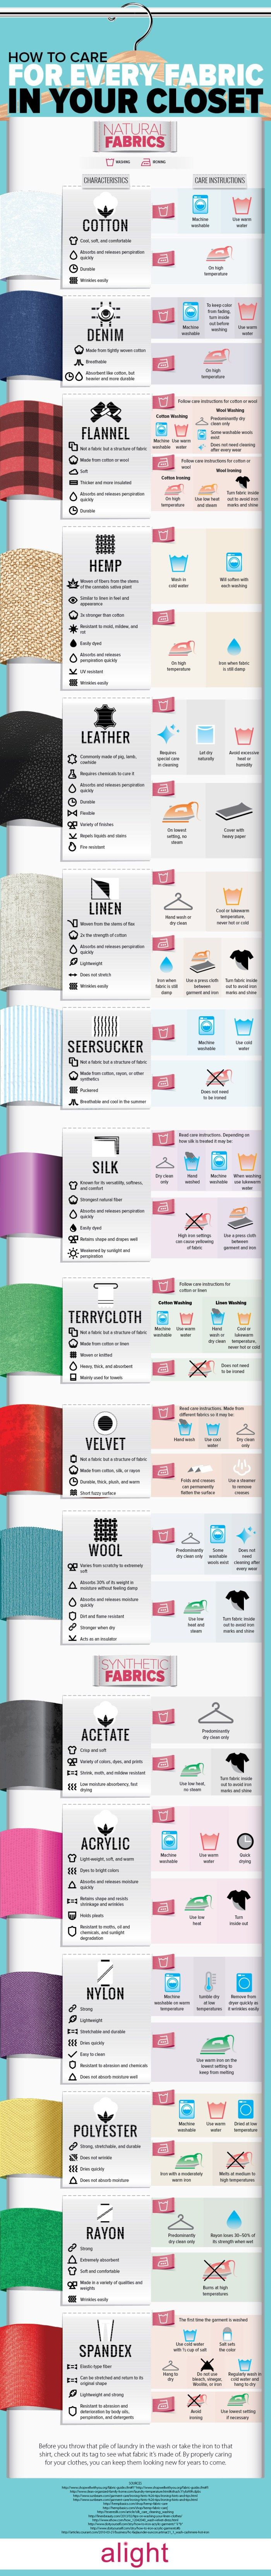 How to Care for Every Fabric In Your Closet [by Alight -- via #tipsographic]. More at tipsographic.com